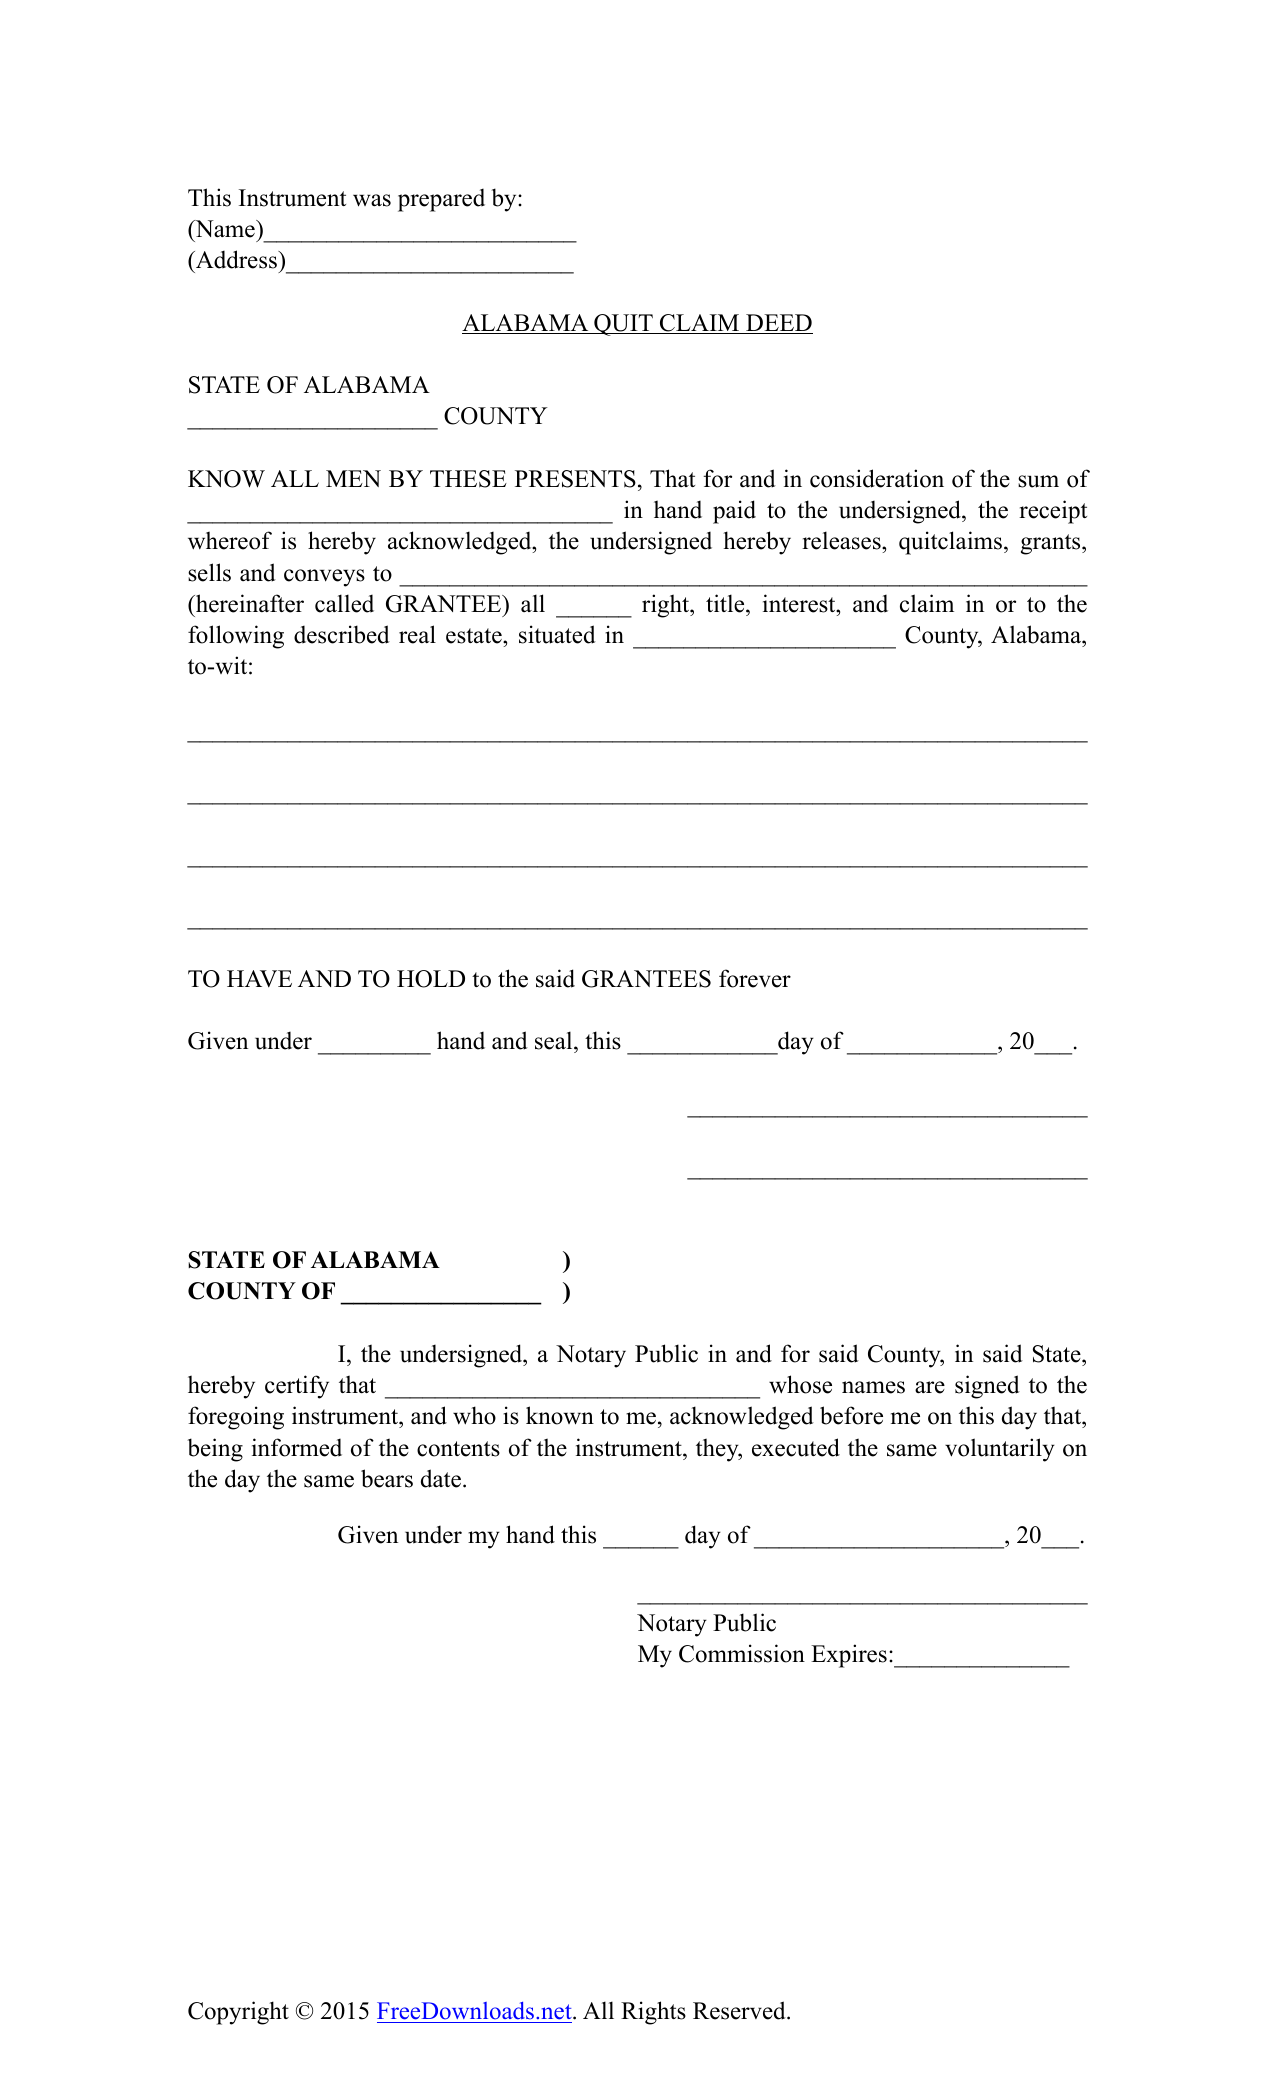 Blank Forms Fill Out